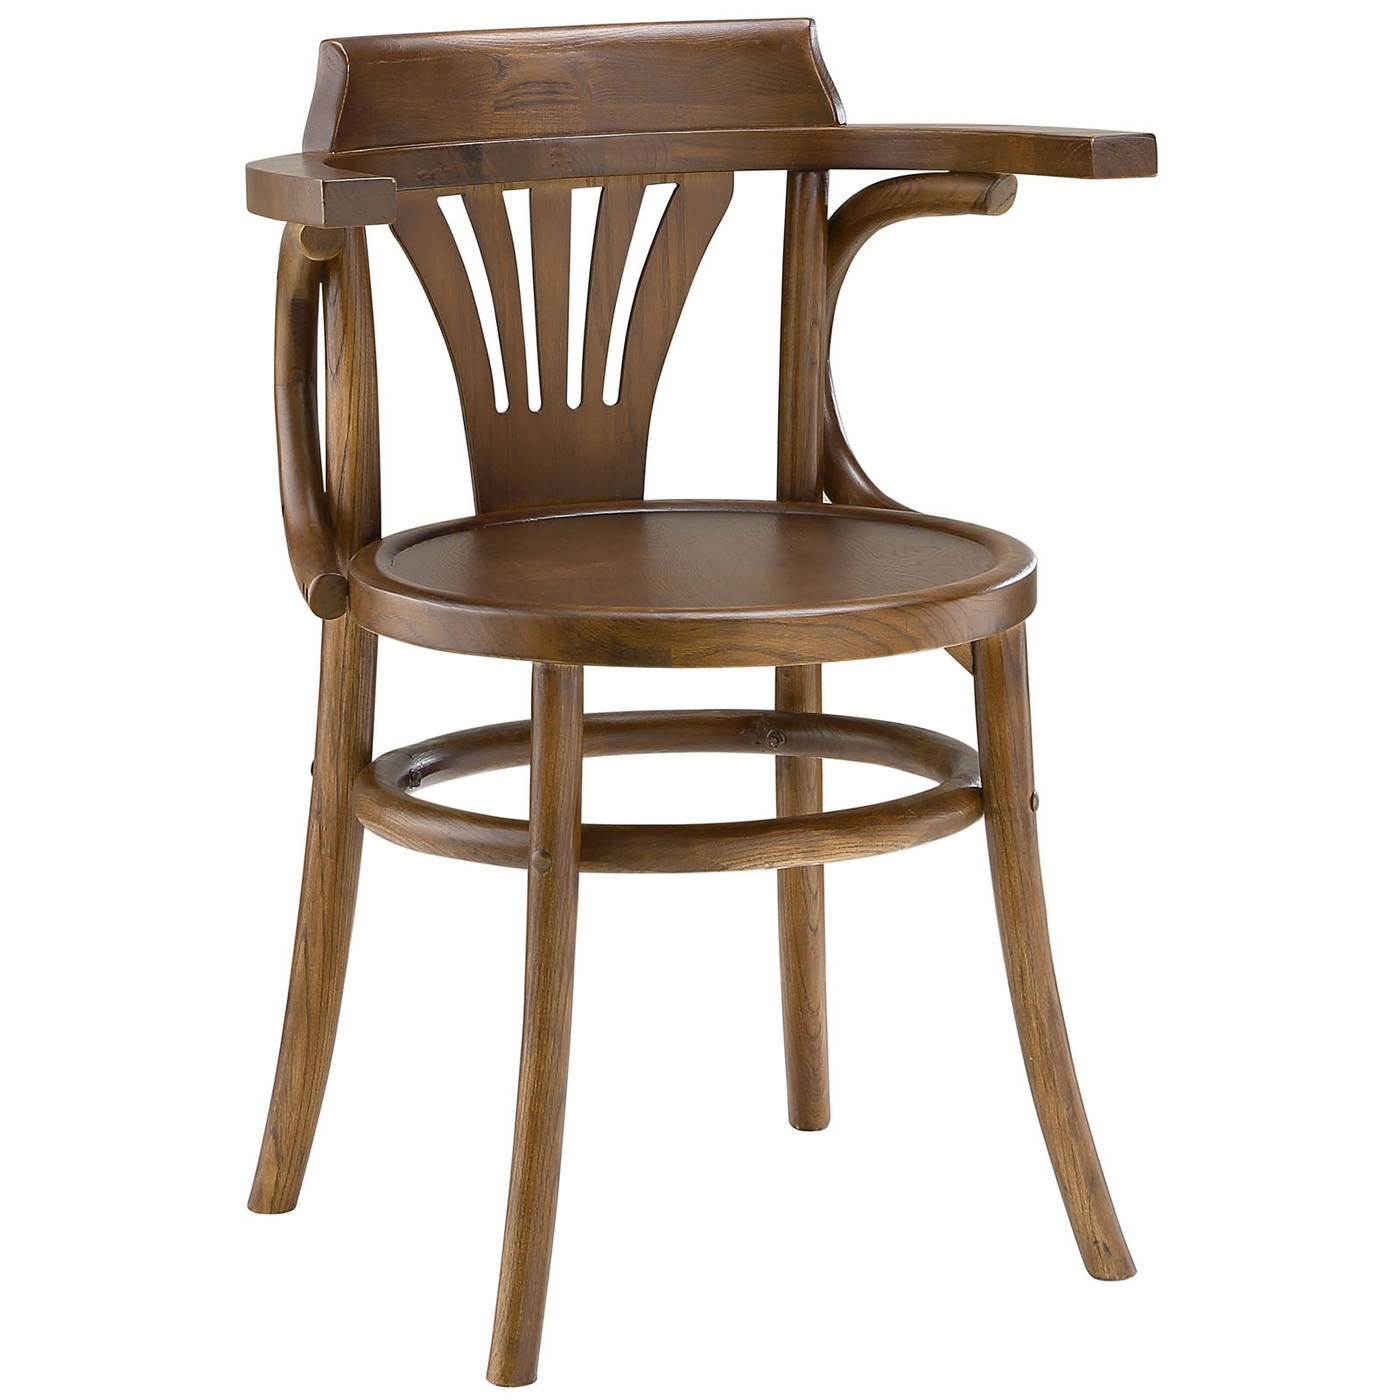 modern rustic dining chairs interior design